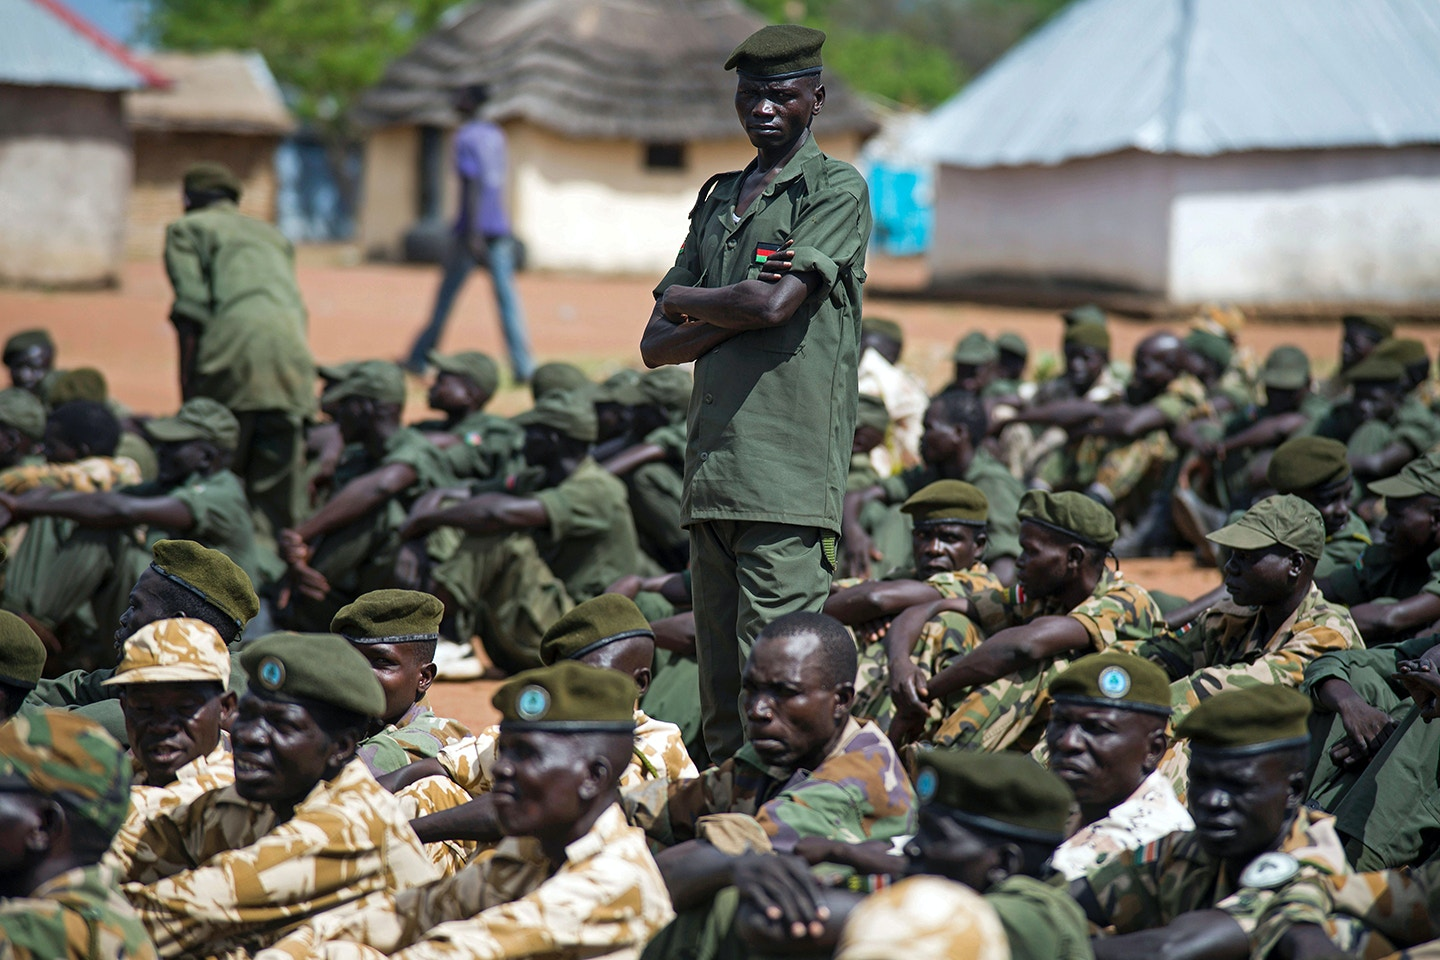 Troops of the South Sudanese army (SPLA) wait for the arrival of members of the Ceasefire and Transitional Security Arrangements Monitoring Mechanism (CTSAMM) at the Pillbam military base in Juba on April 16, 2016.<br /> The SPLA permitted the CTSAMM to visit their military sites and verify whether or not the capital Juba has been demilitarized as required by the August 2015 peace agreement which President Salva Kiir's government signed with the armed opposition faction led by First Vice President designate Riek Machar. CTSAMM isresponsible for monitoring compliance and reporting directly to the Joint Monitoring and Evaluation Commission (JMEC) on the progress of the implementation of the Permanent Ceasefire and Transitional Security Arrangements.  / AFP / ALBERT GONZALEZ FARRAN        (Photo credit should read ALBERT GONZALEZ FARRAN/AFP/Getty Images)